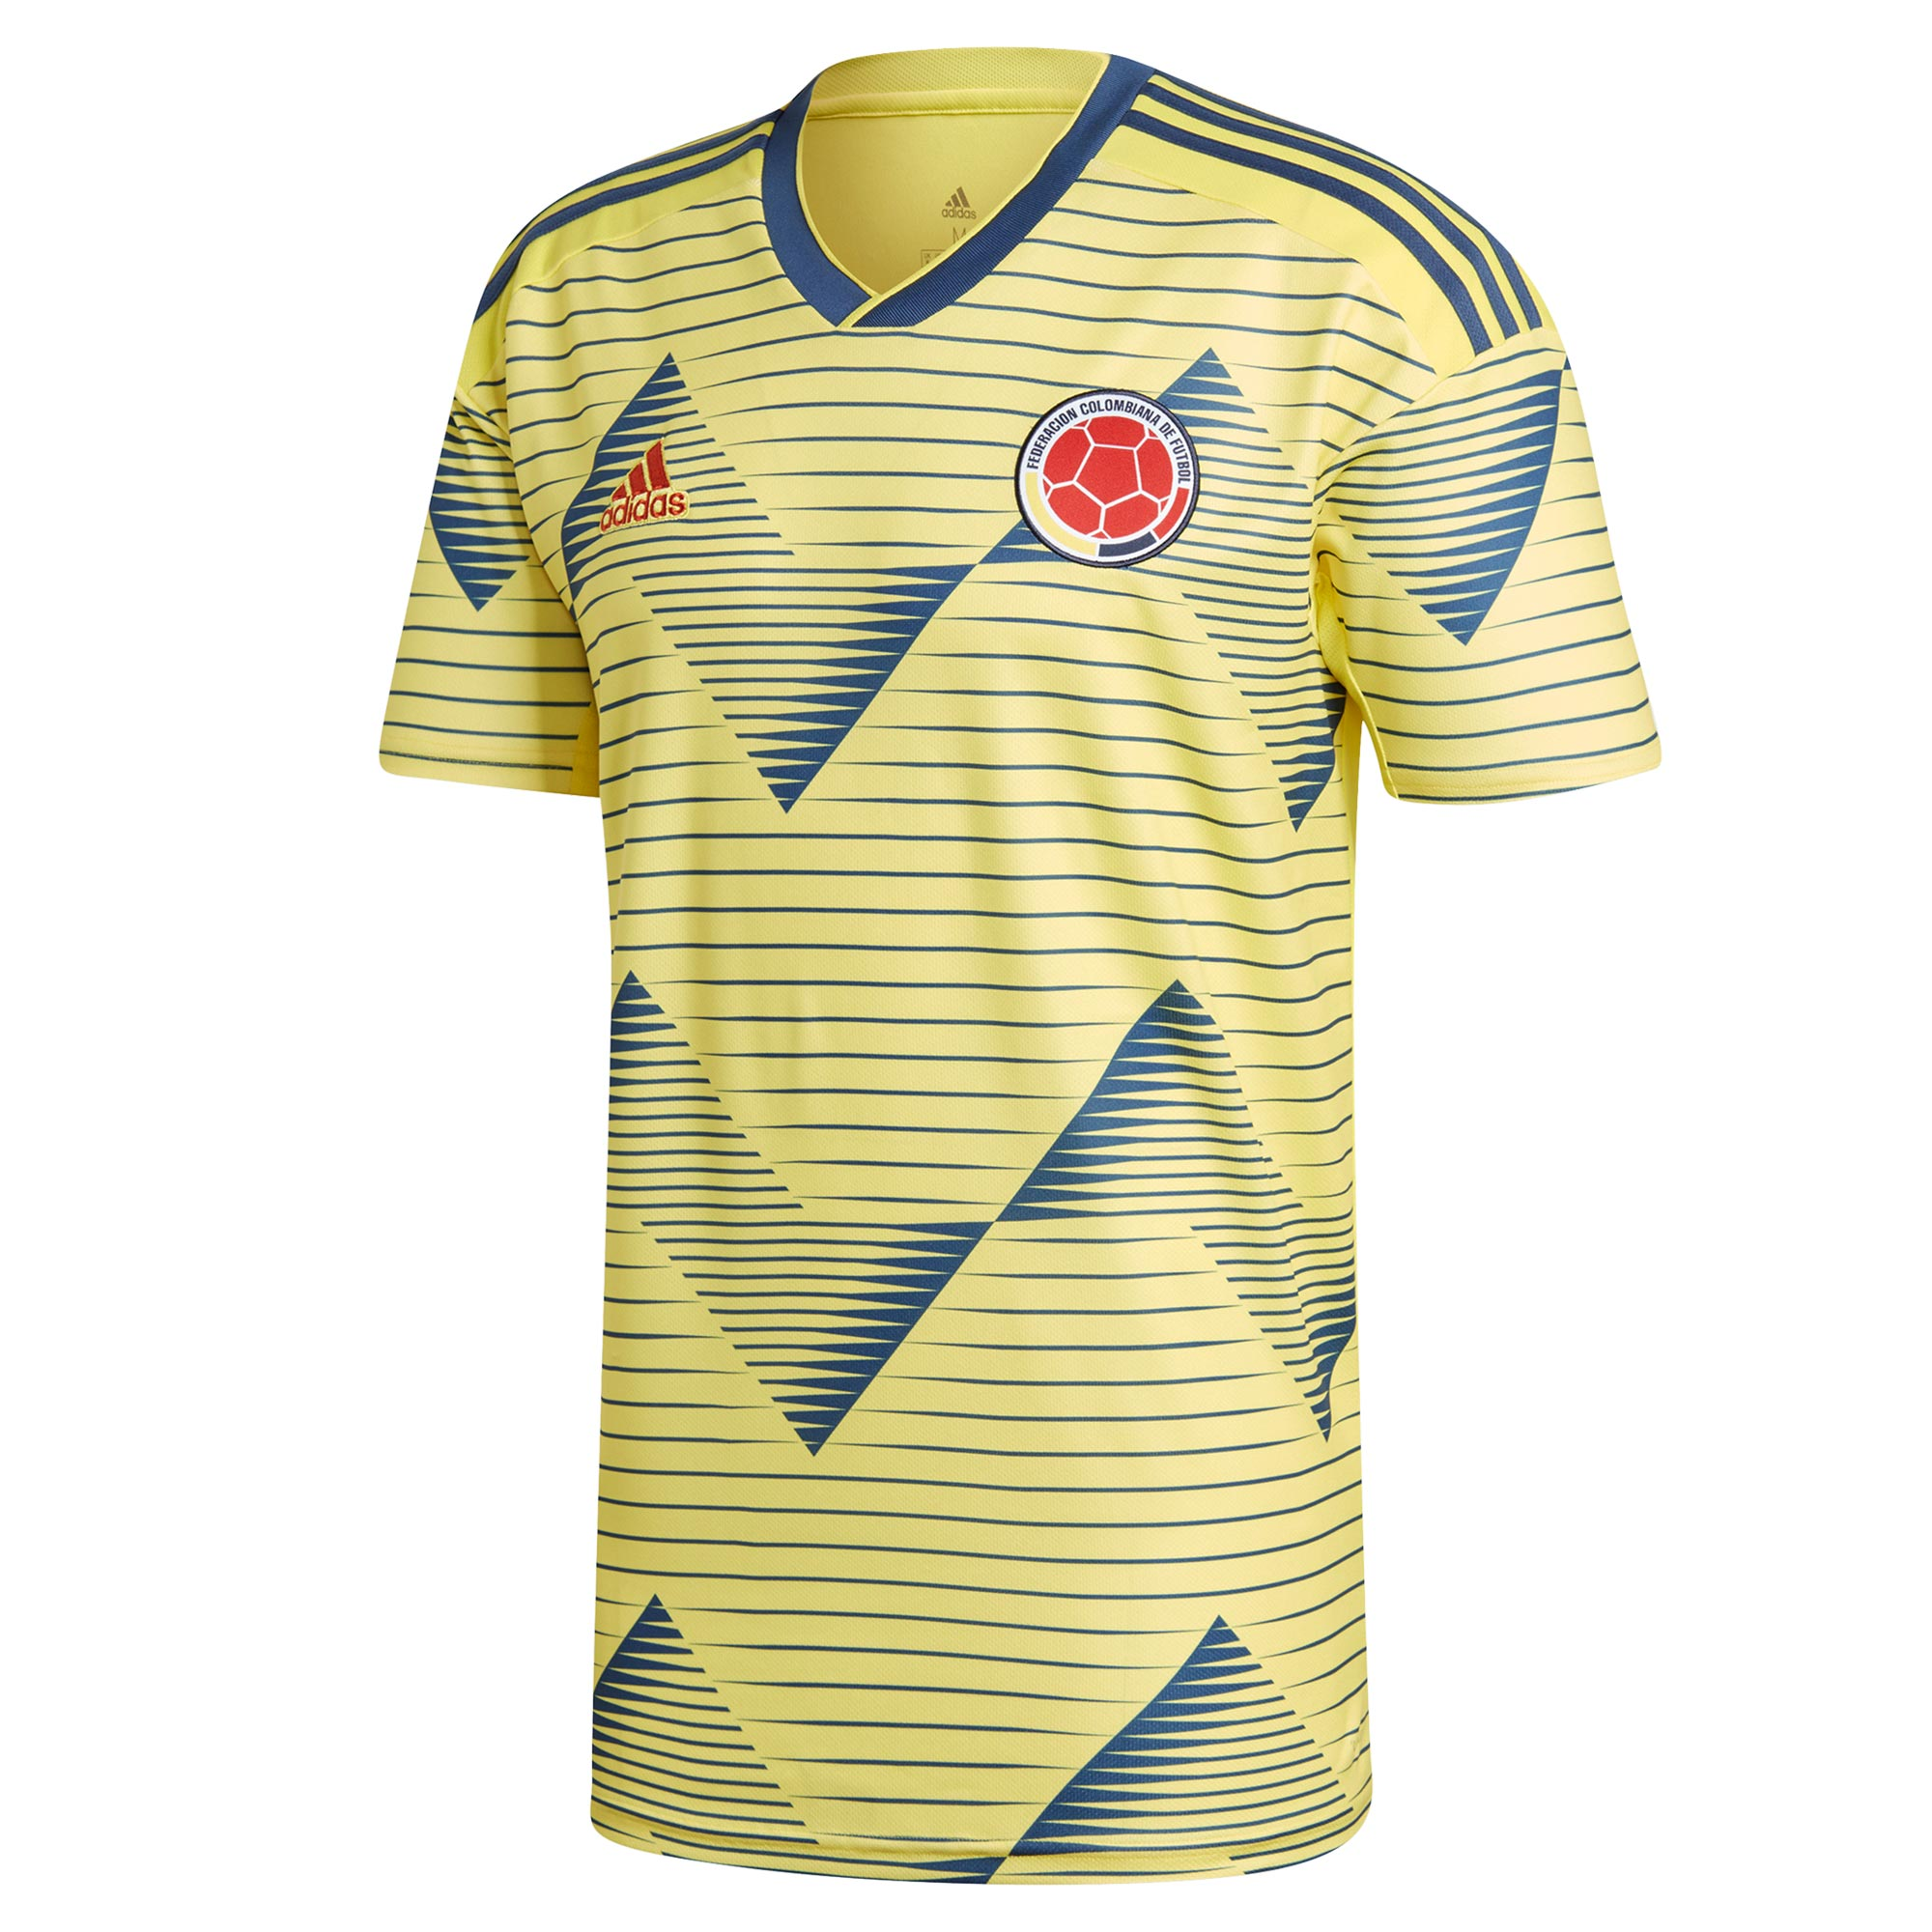 Colombia Home shirt